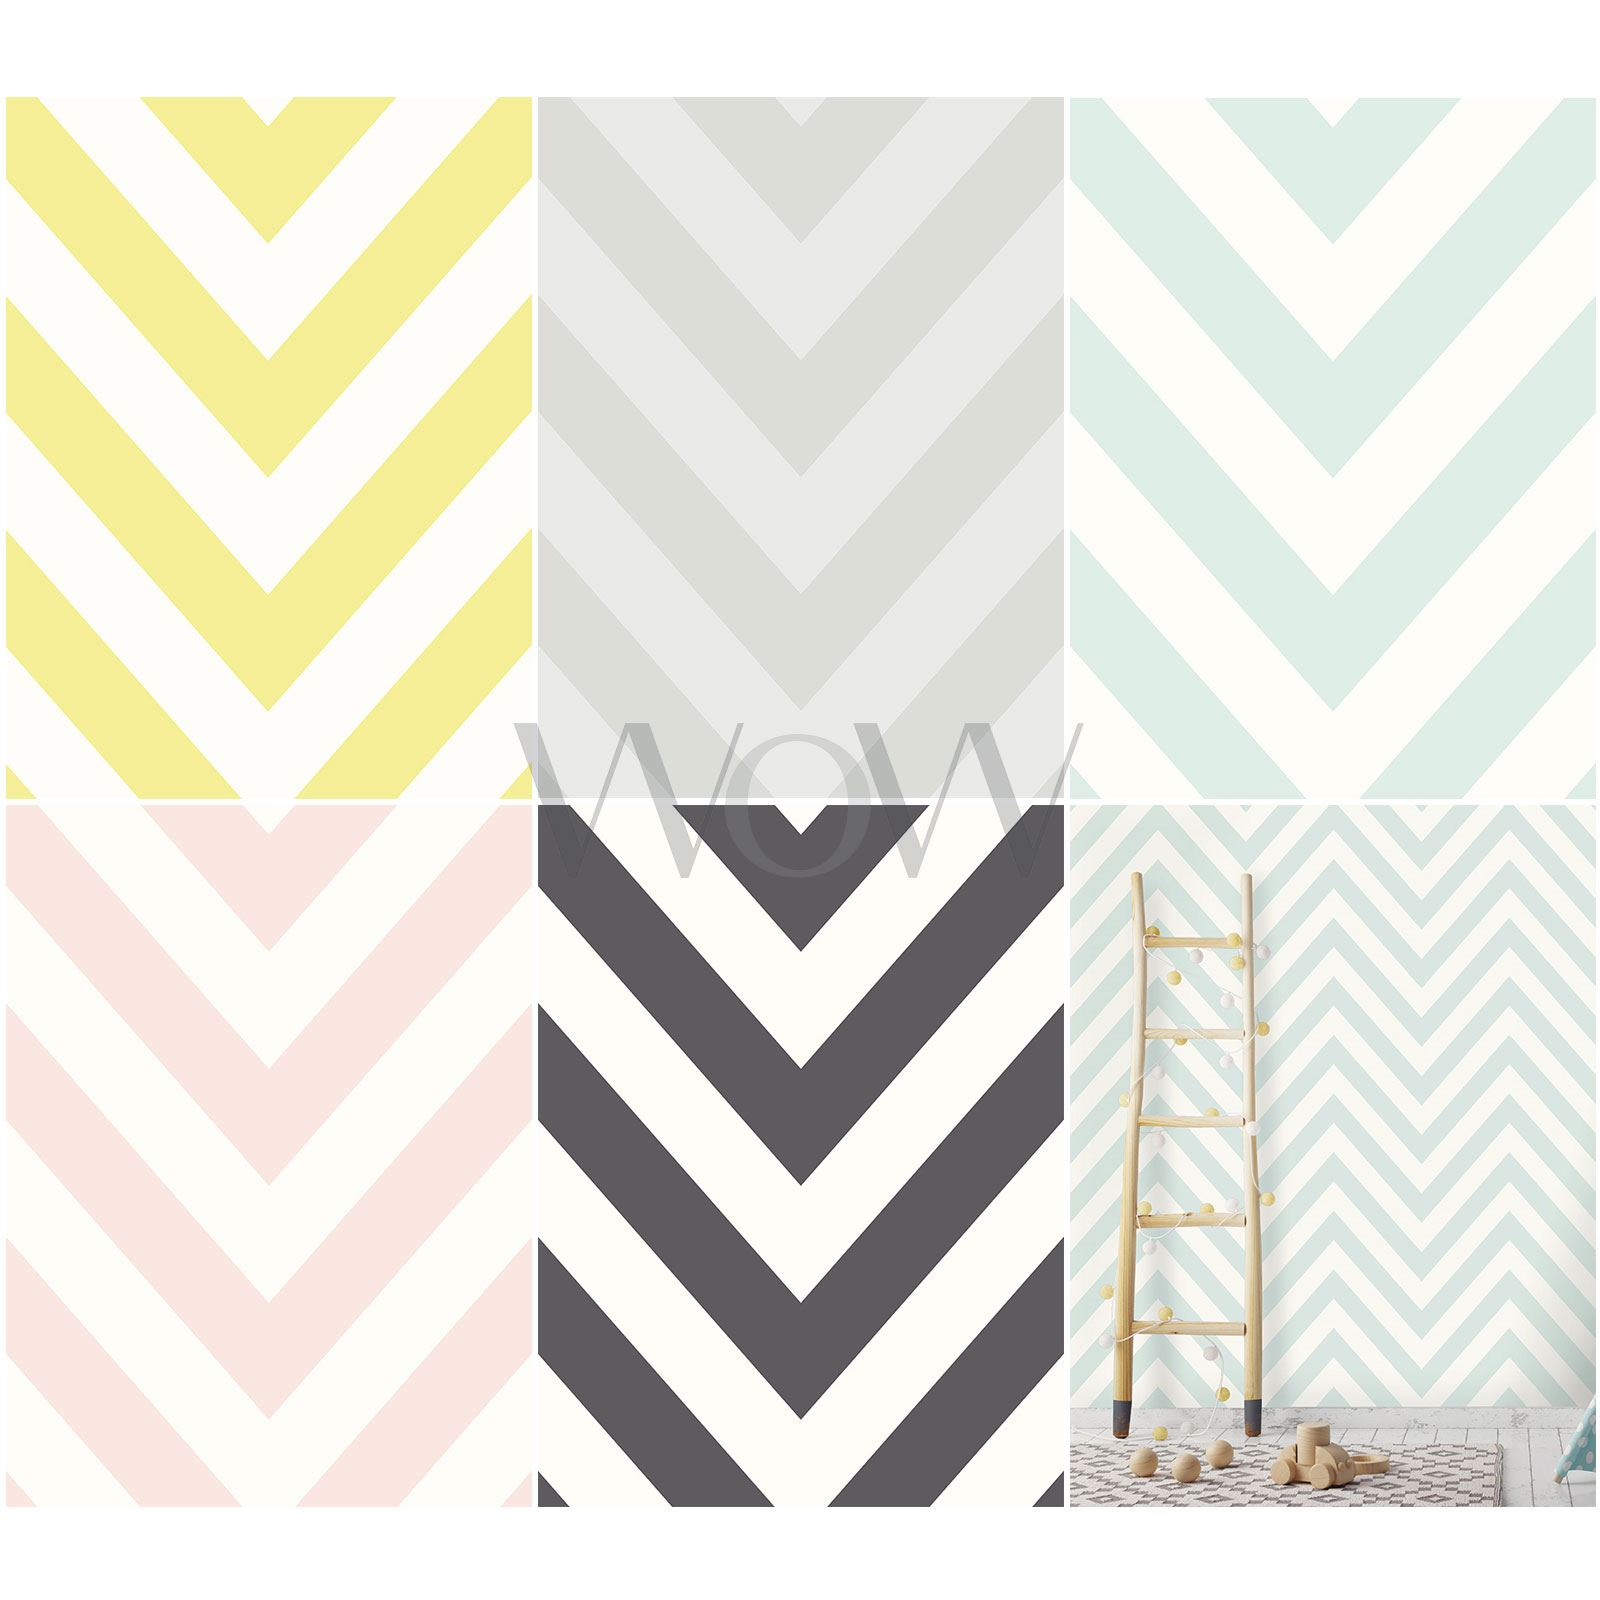 Details About Holden Chevron Zig Zag Wallpaper Geometric Feature Wall